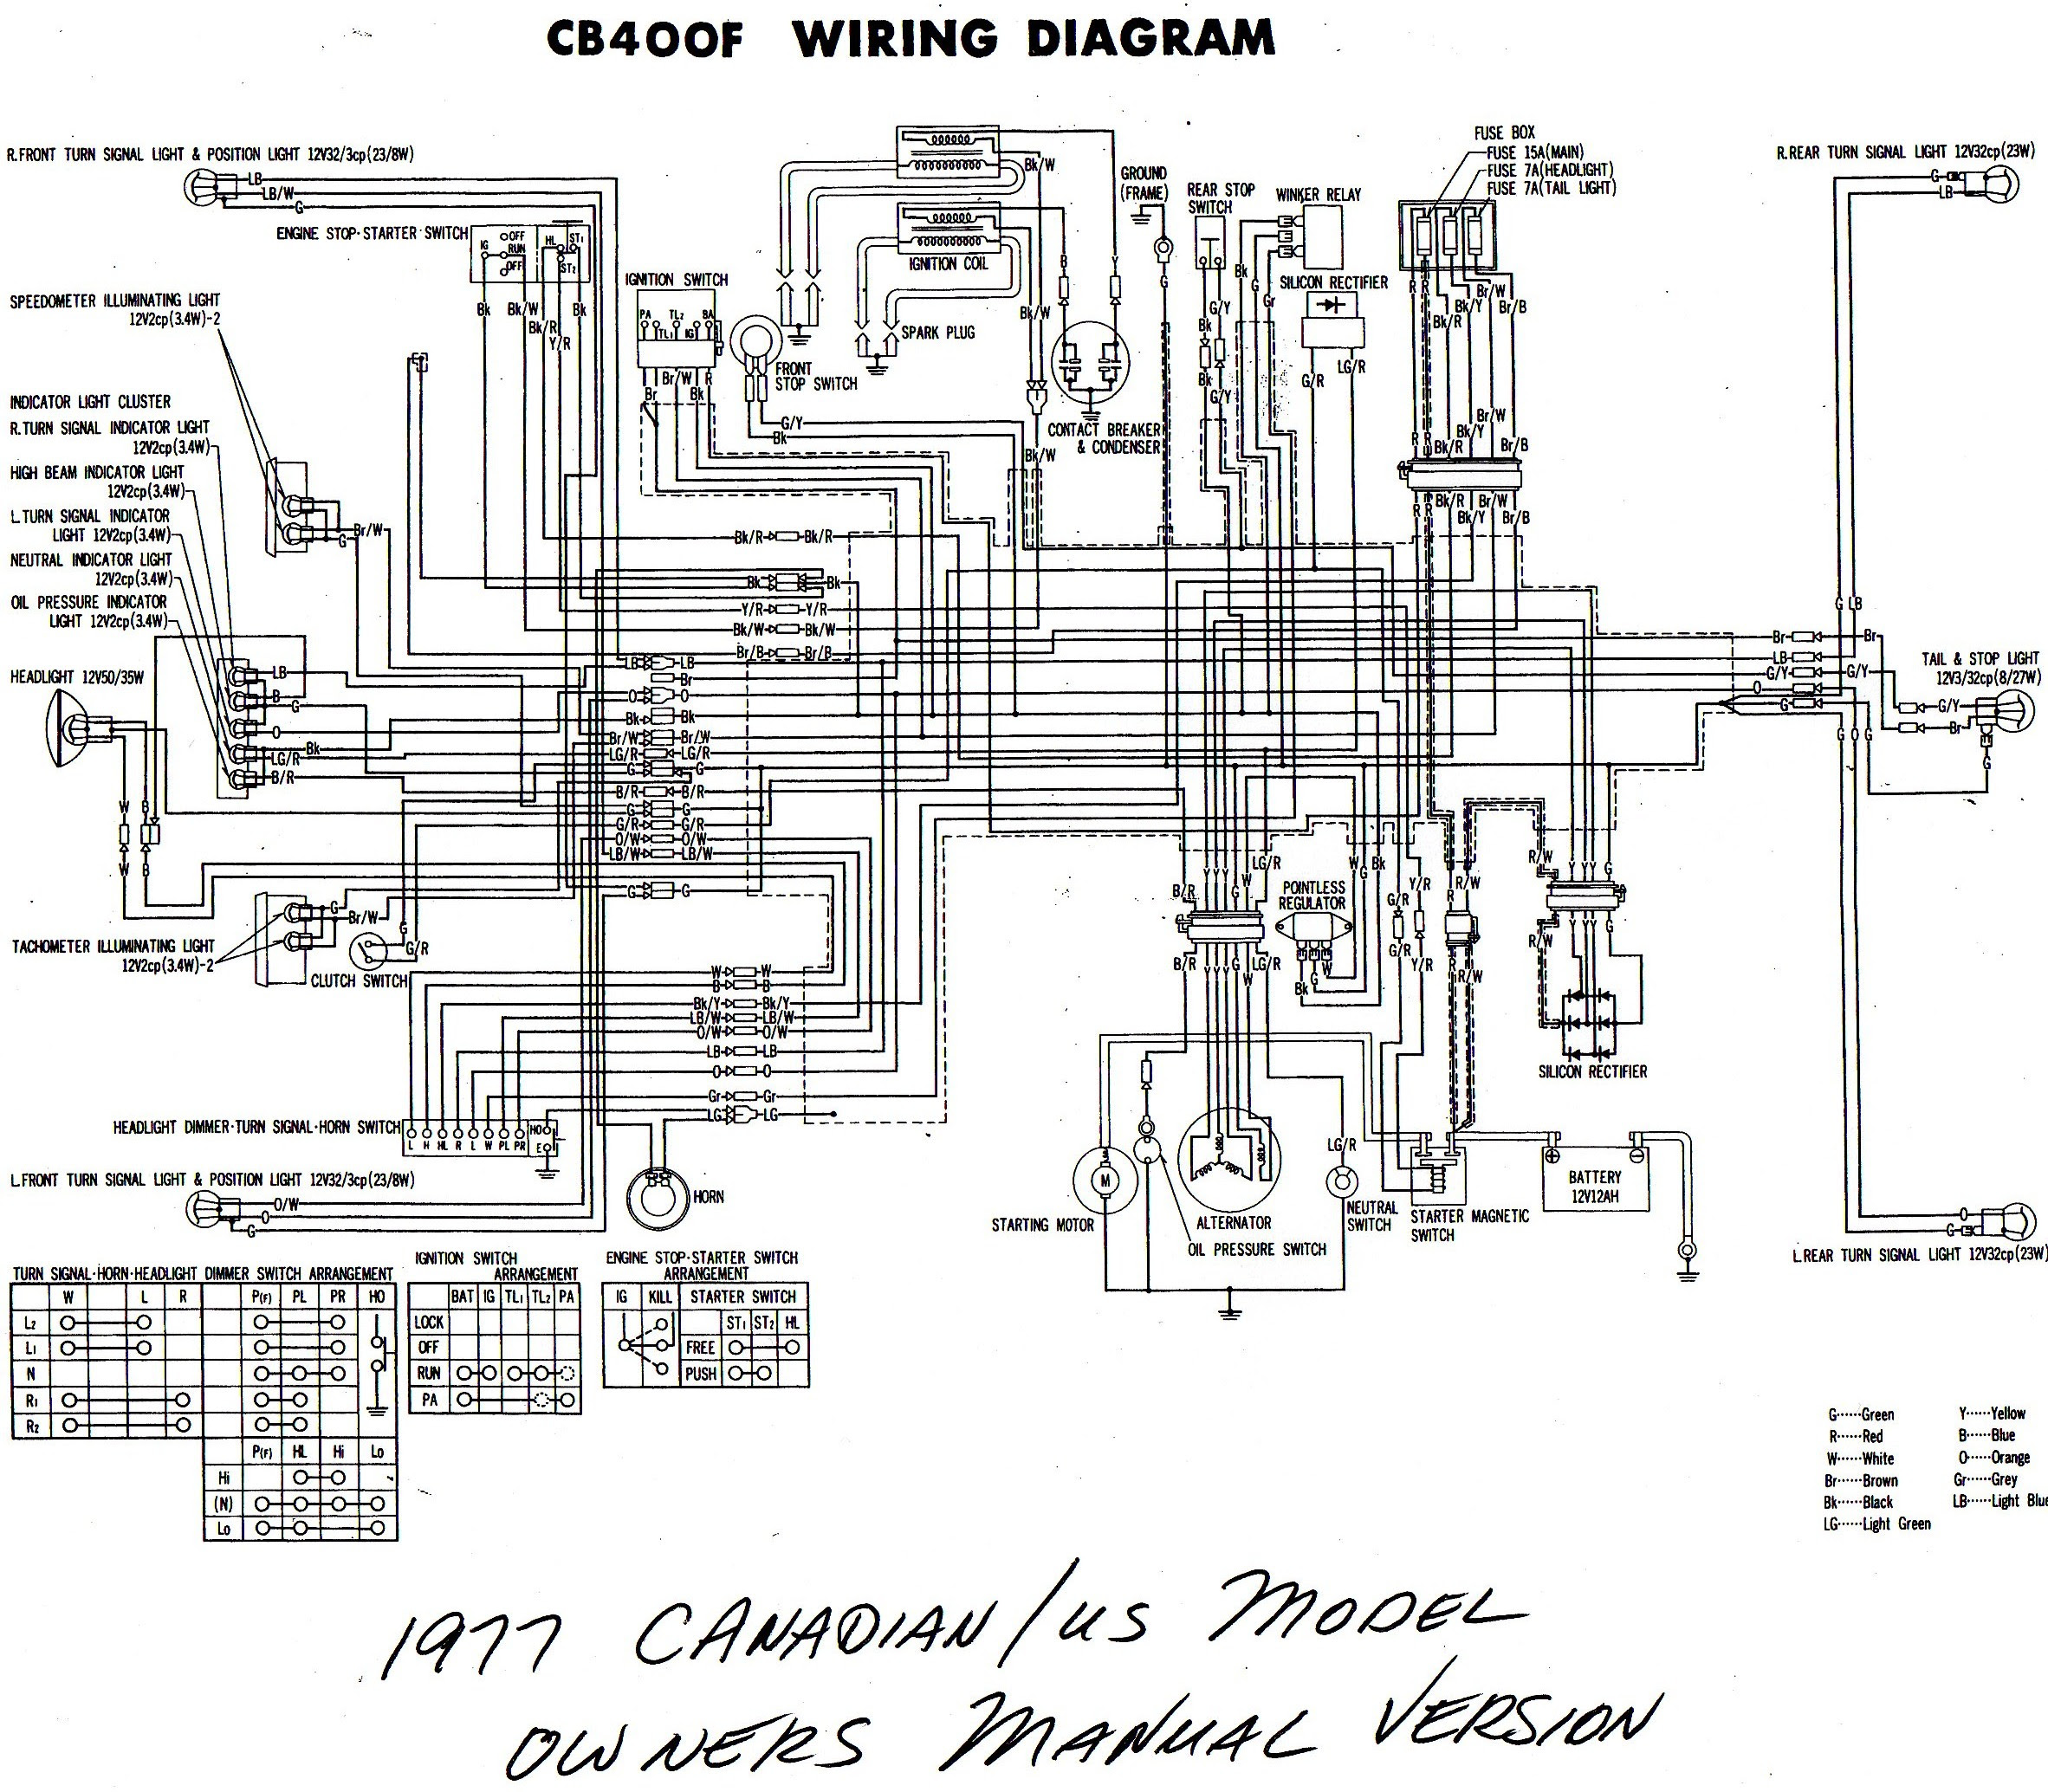 Wiring Diagram Honda Steed 400